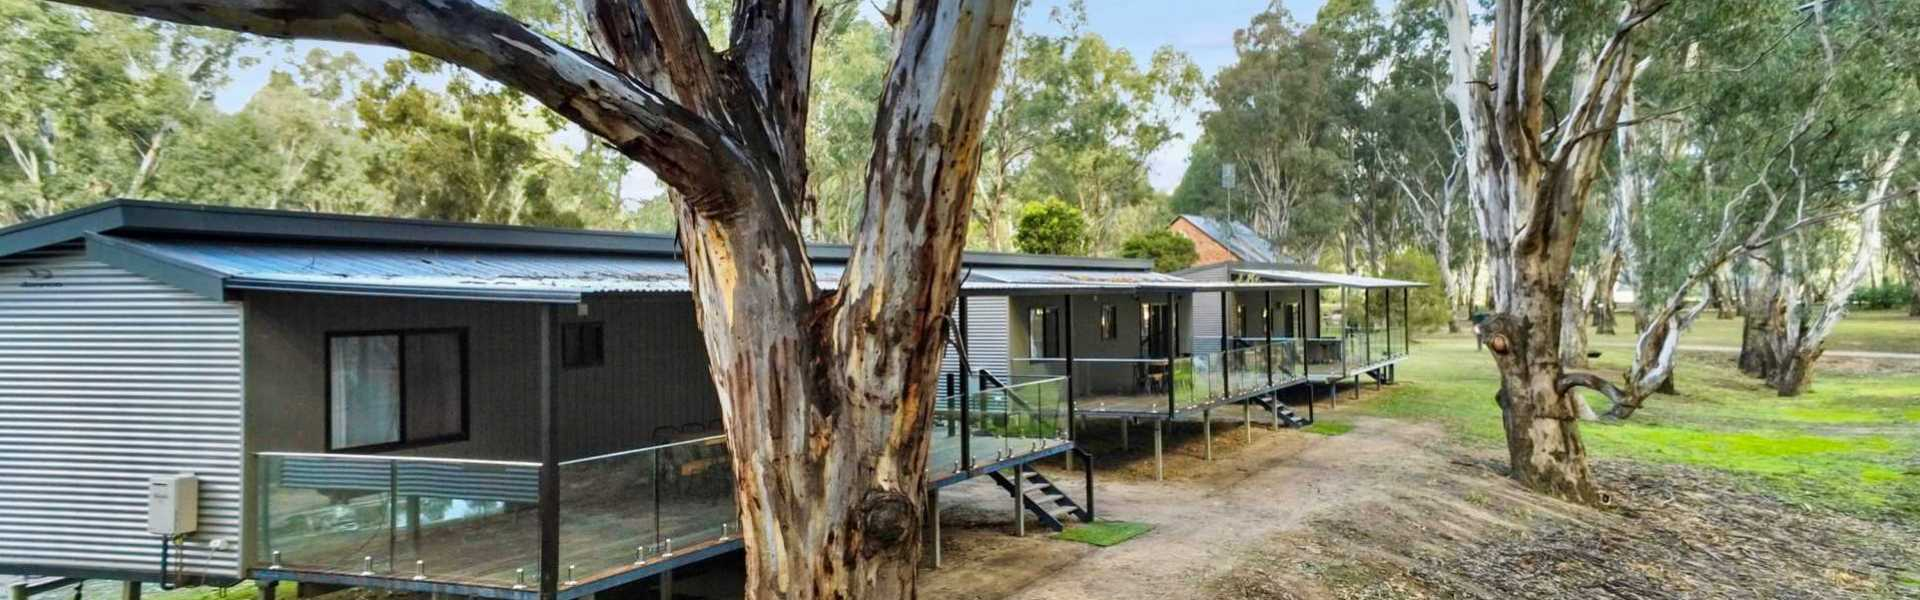 Kui Parks, Bushland on the Murray Holiday Park, Cabins